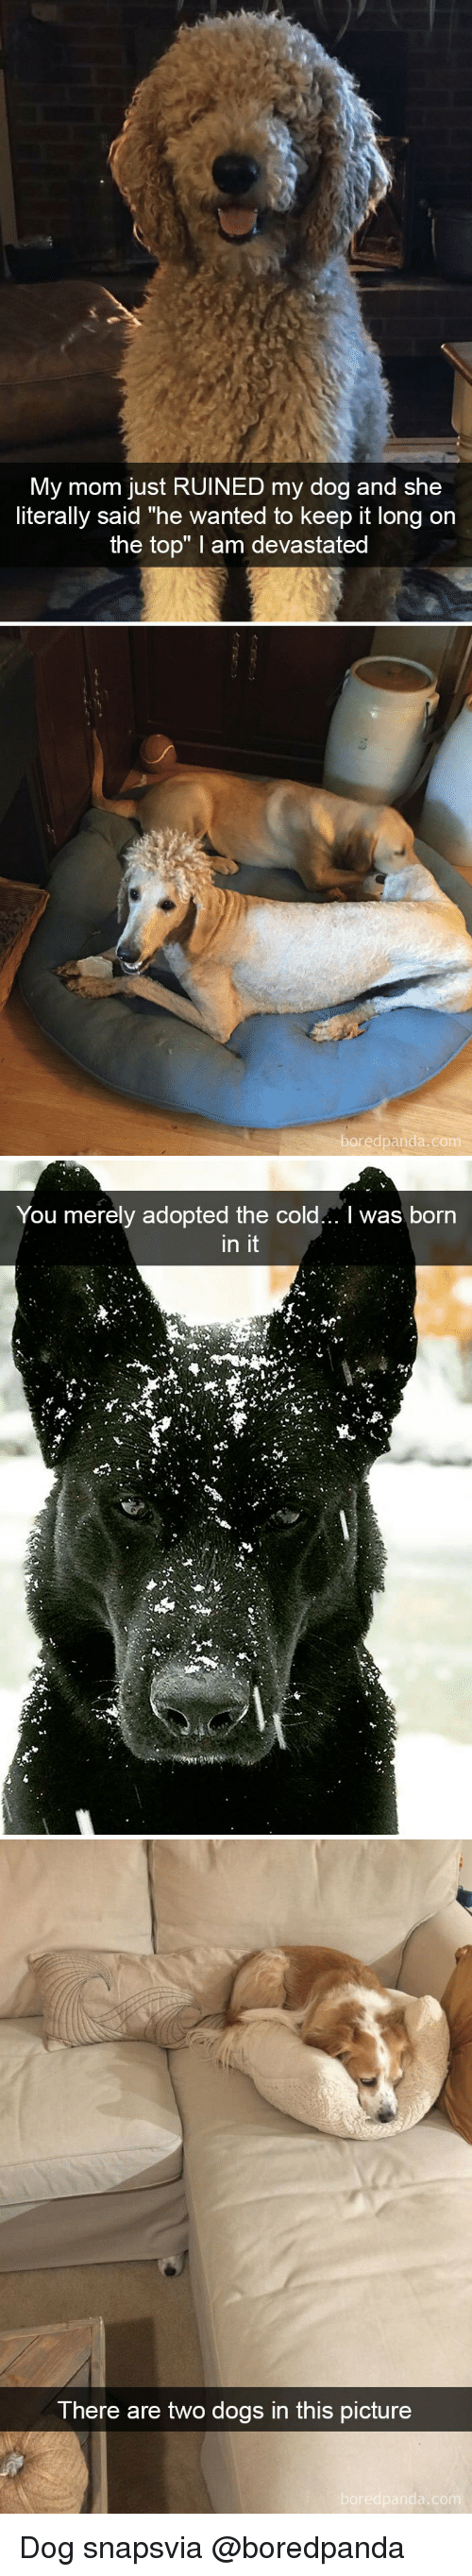 "Dogs, Cold, and Mom: My mom just RUINED my dog and she  literally said ""he wanted to keep it long on  the top"" I am devastated  edpanda.co   You merely adopted the cold... I was born  in it   There are two dogs in this picture Dog snapsvia @boredpanda"